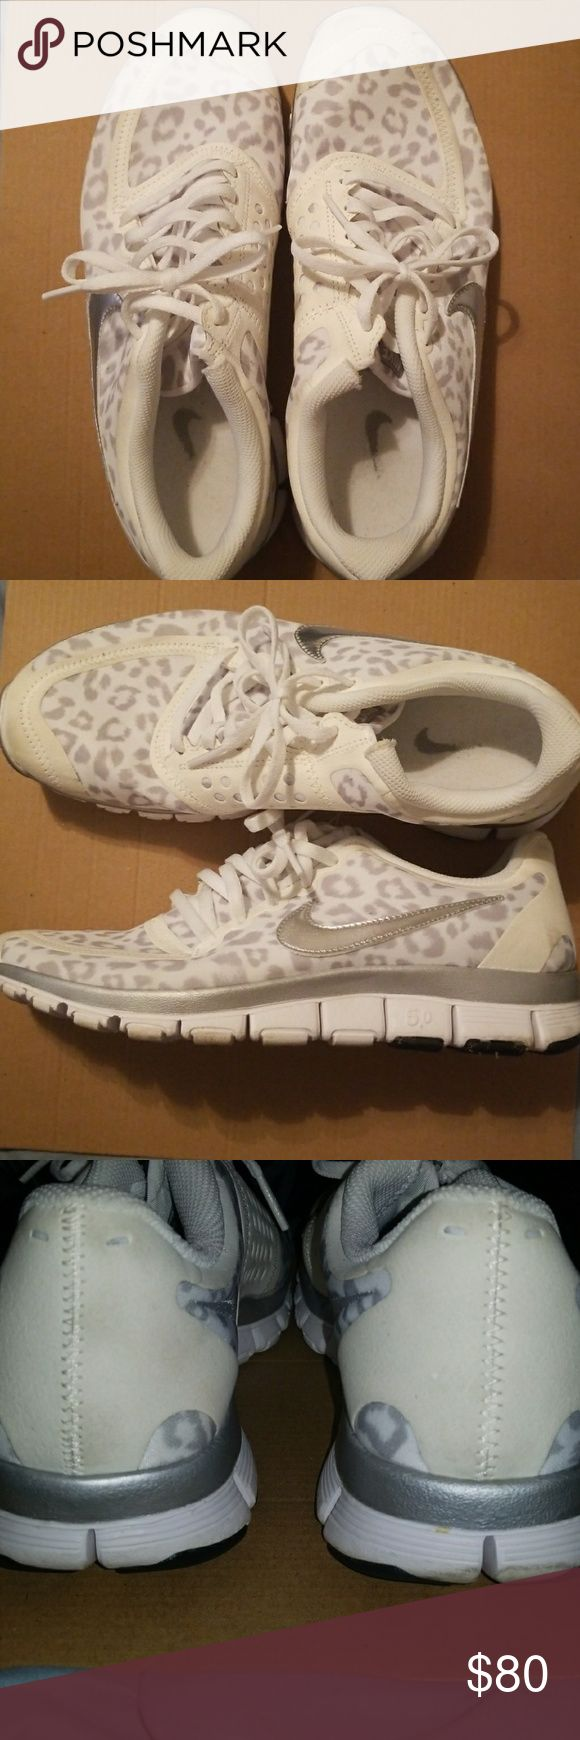 White Leopard Nike 5.0 Shoes White Leopard Nike shoes, worn a few times and are in great shape. If you have paypal I'll give you a discount through transaction with that (win-win for both of us). Nike Shoes Sneakers